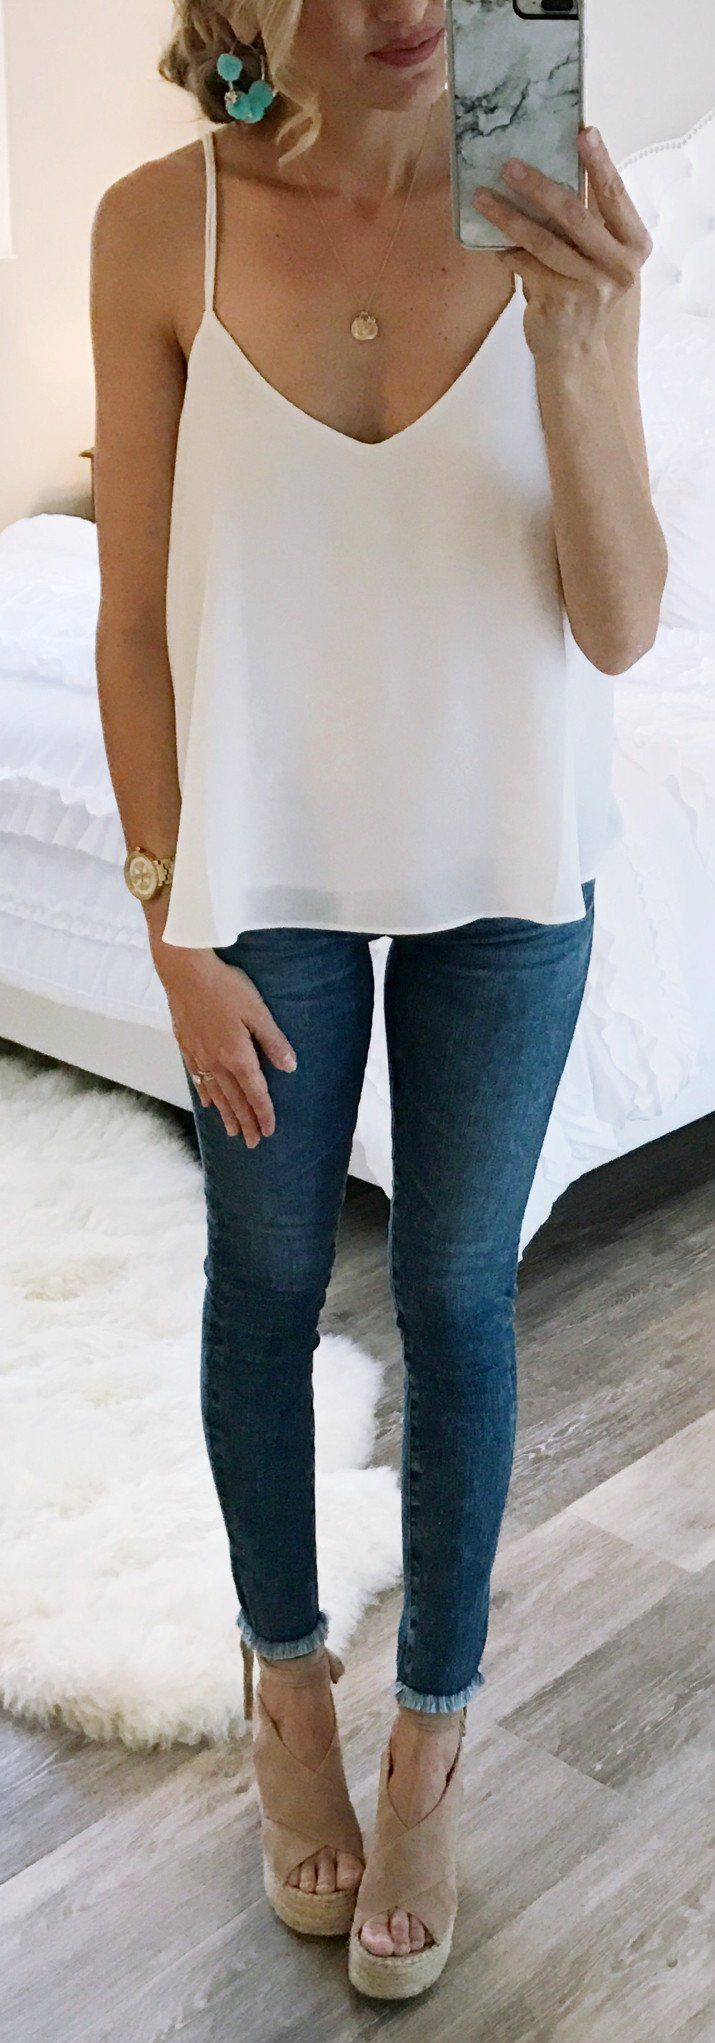 #spring #outfits  White Top & Skinny Jeans & Beige Suede Platform Sandals